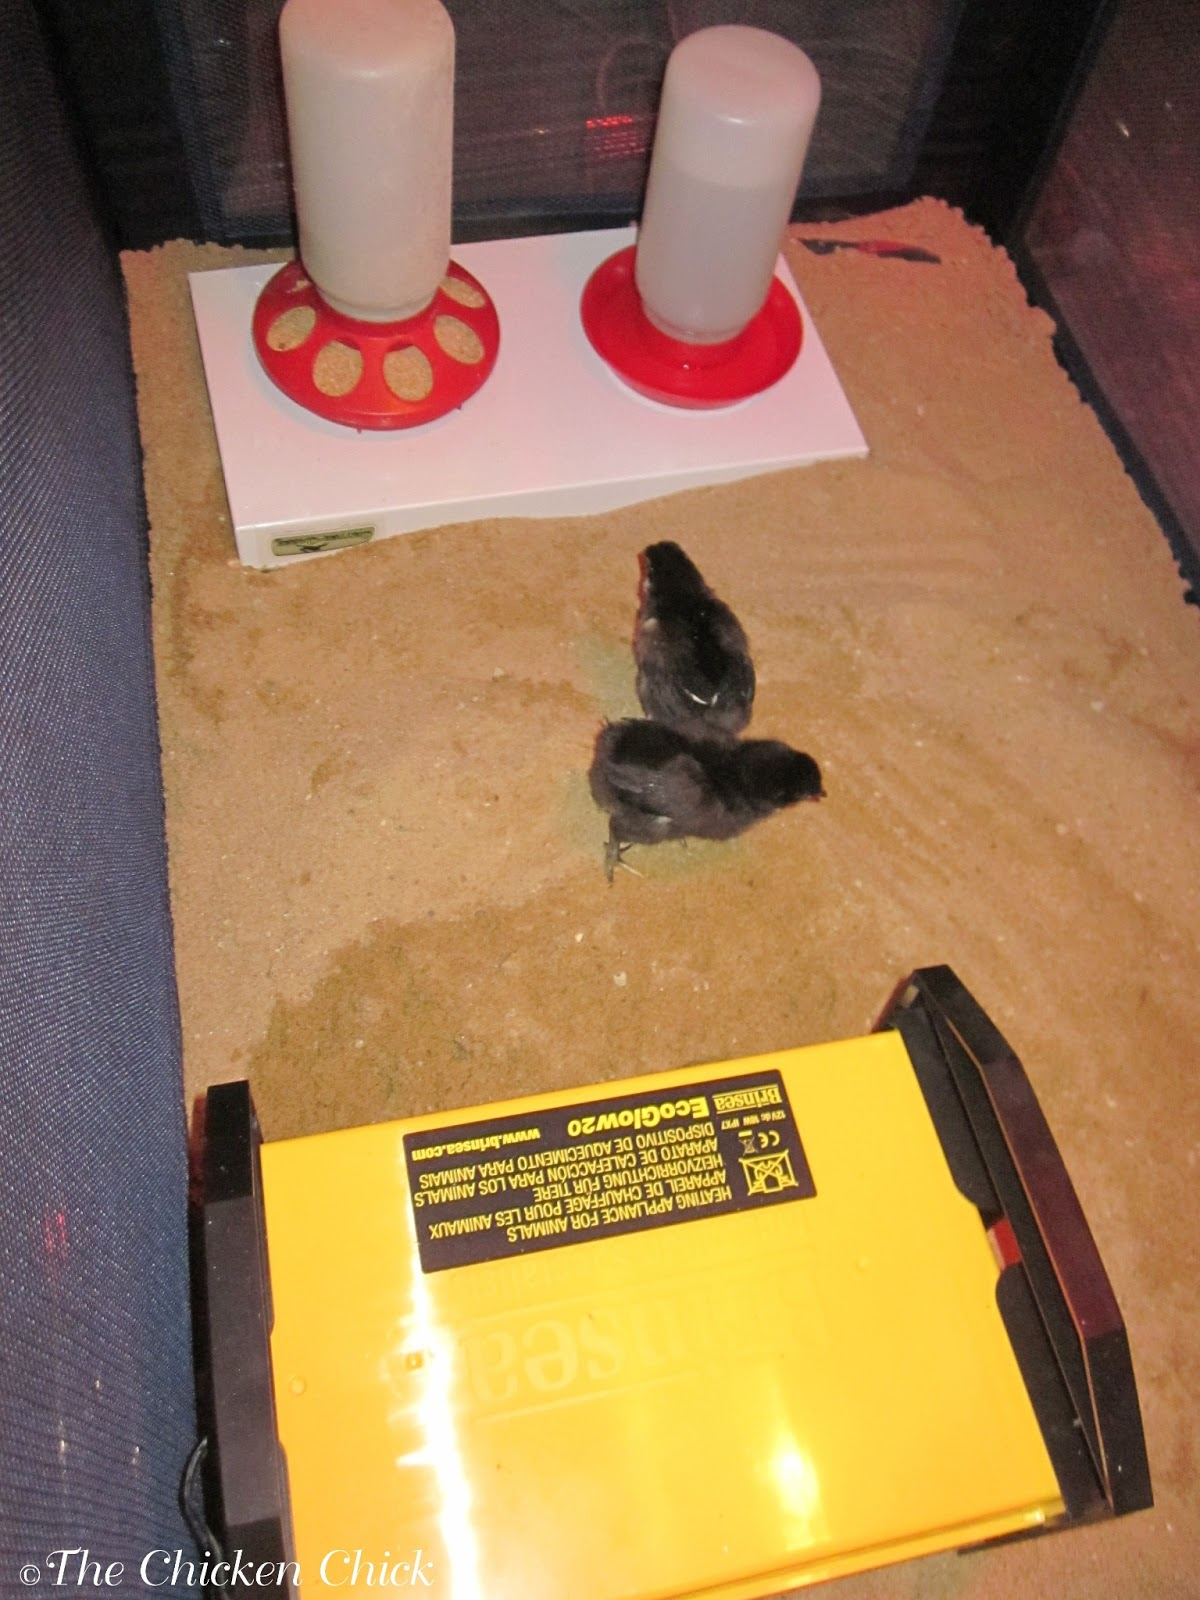 The Chicken Chick®: When to Move Chicks from Brooder to Chicken Coop